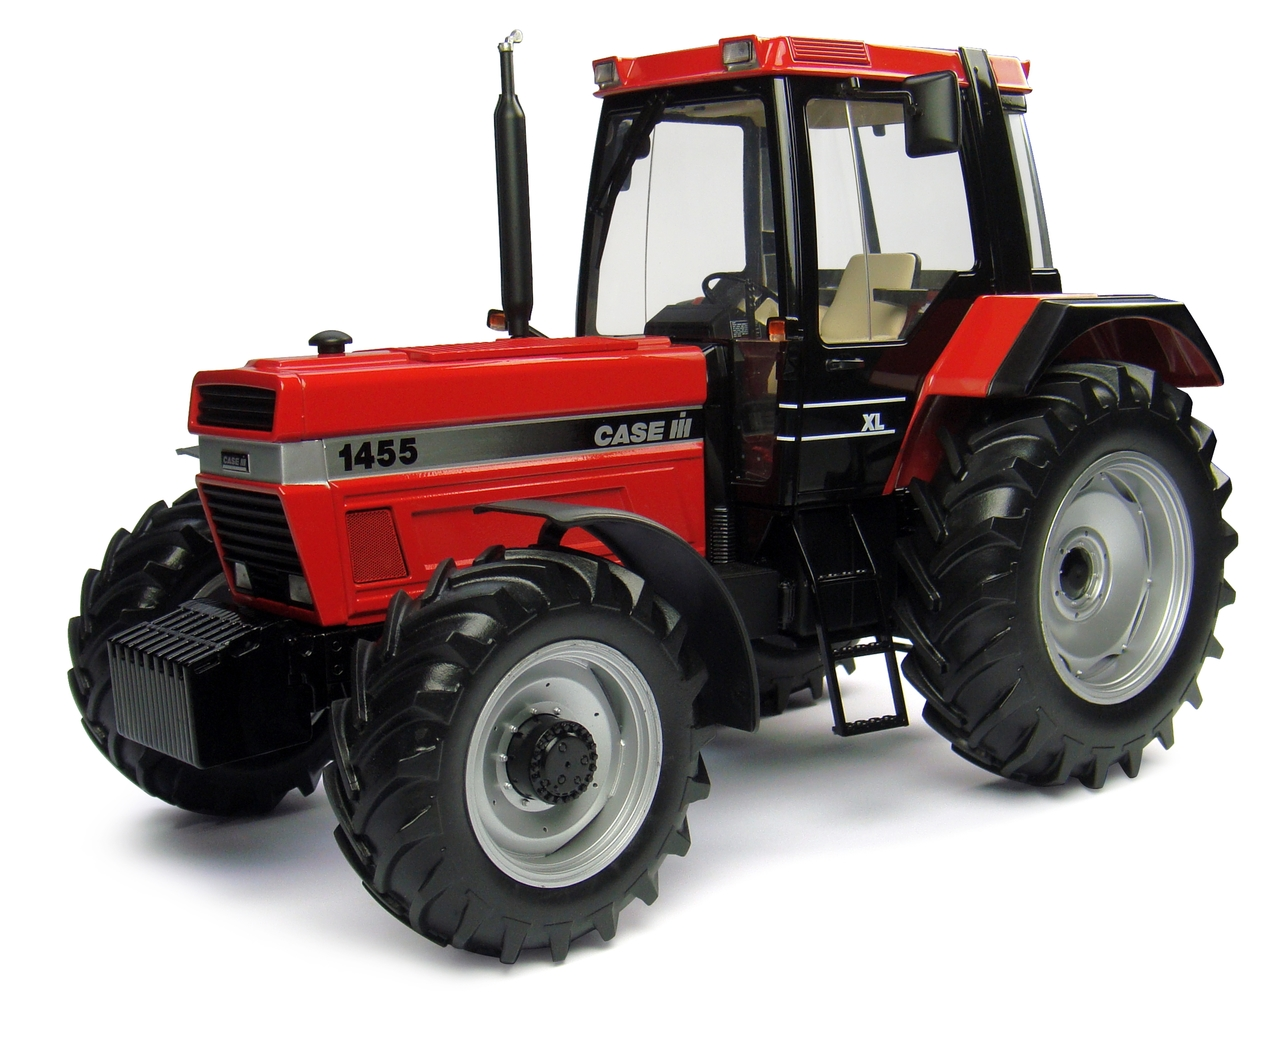 1996 Case IH 1455XL Tractor (4th Generation) Limited Edition to 2000 pieces Worldwide 1/16 Diecast Model by Universal Hobbies